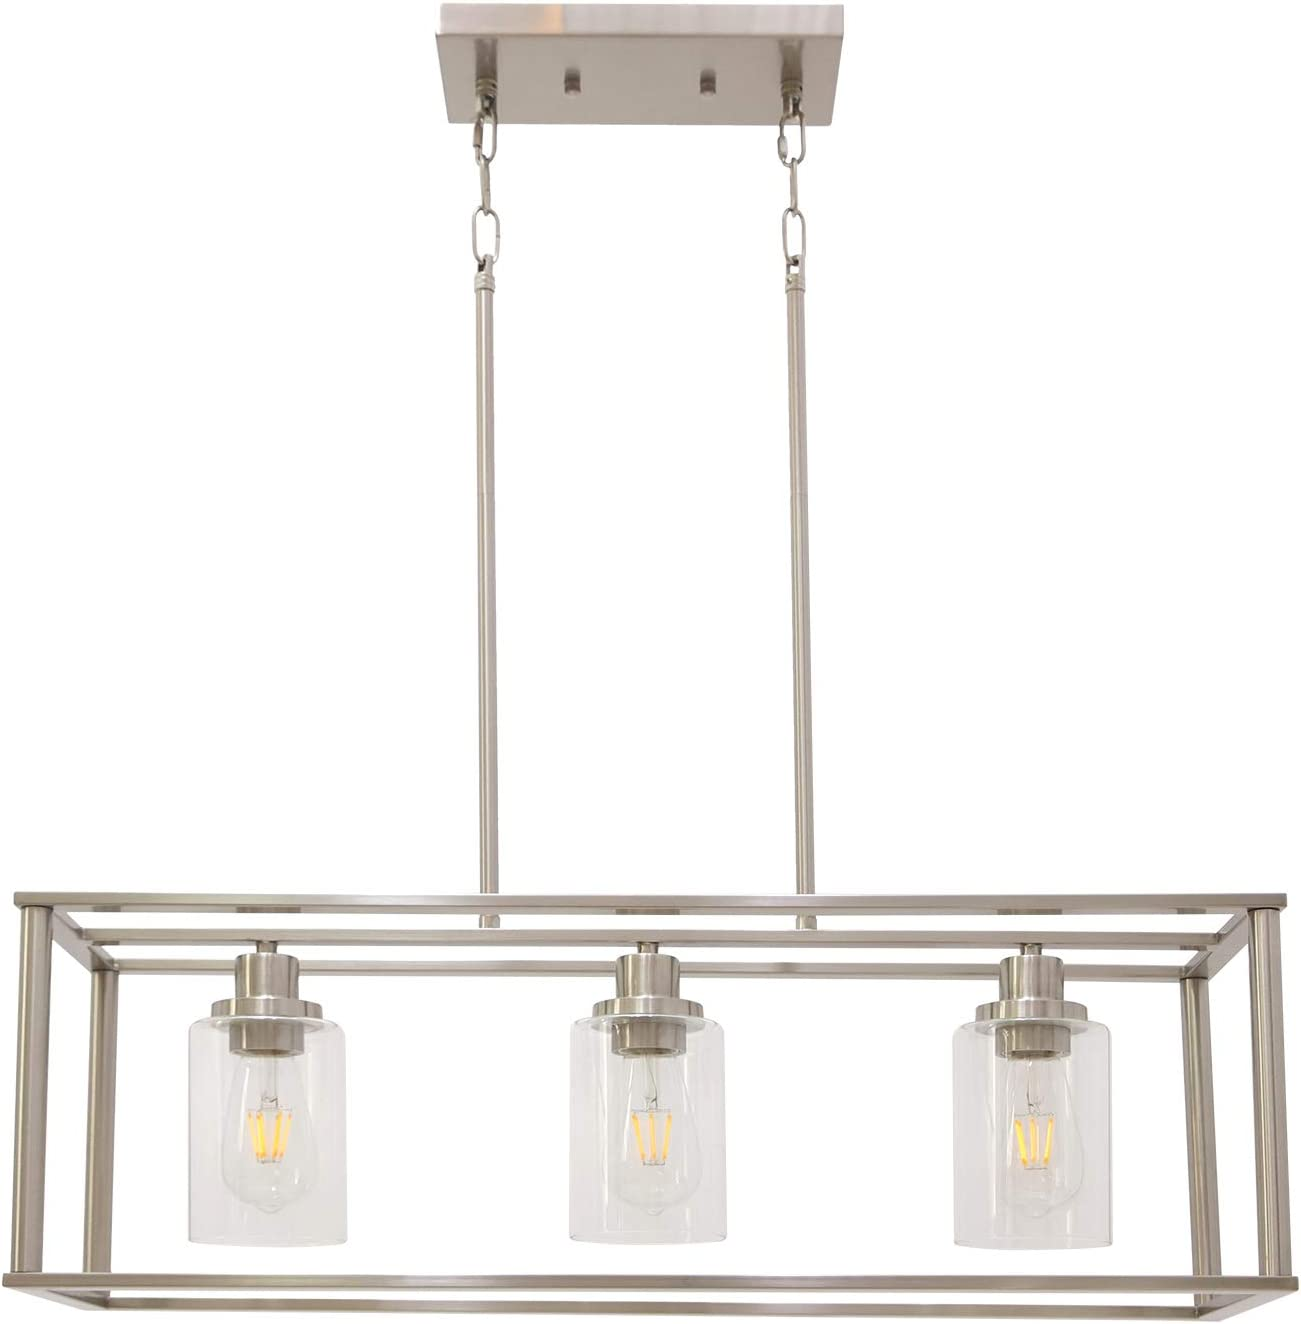 VINLUZ 3 Light Linear Chandeliers Brushed Nickel with Clear Glass Shade Modern Kitchen Island Pendant Dining Room Light Fixture Hanging Farmhouse Ceiling Light for Living Room Bar